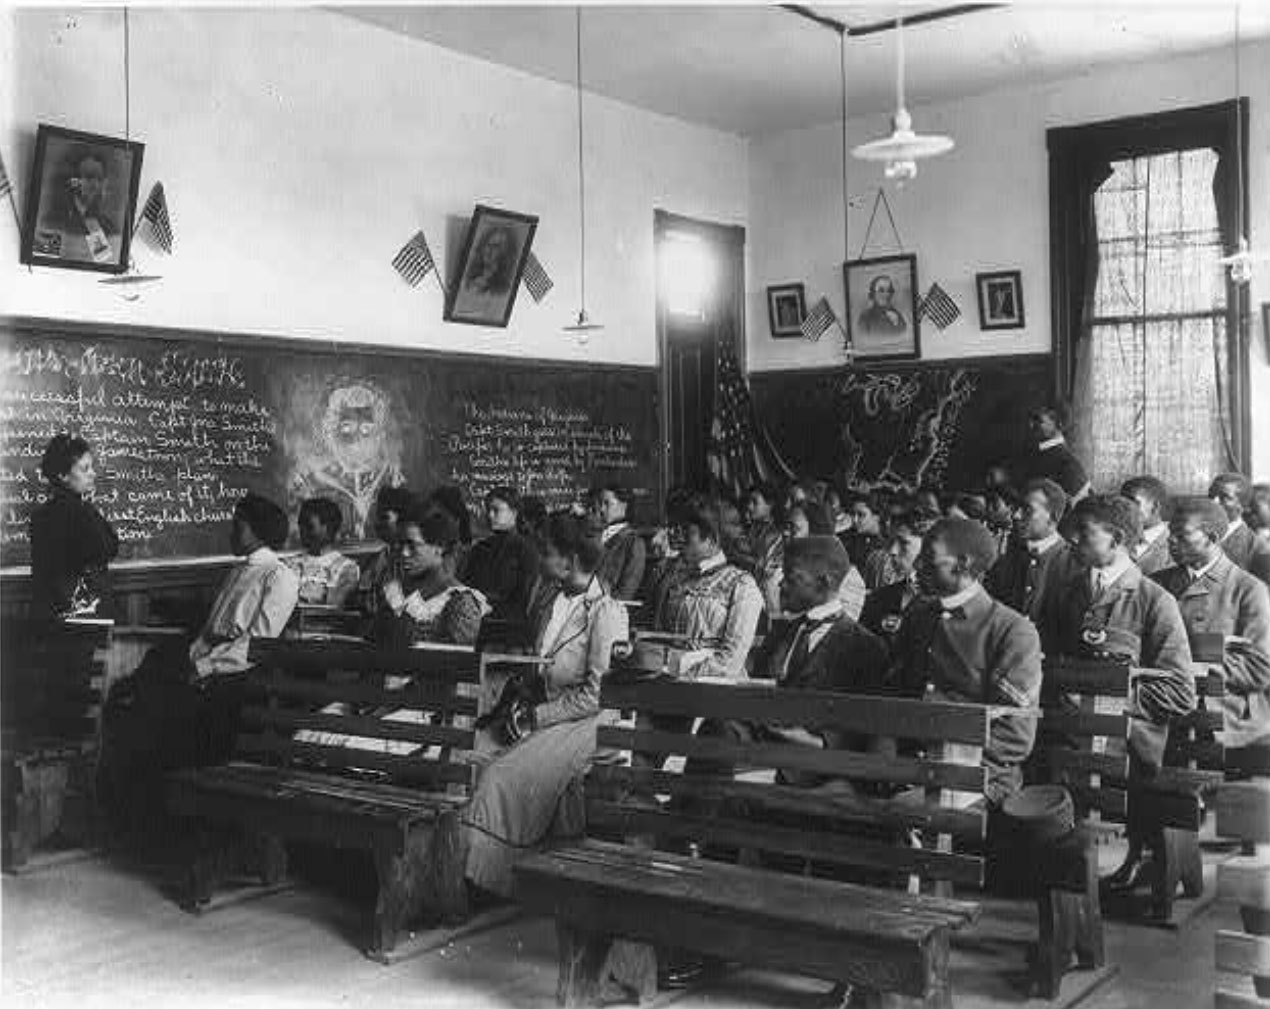 History students at the Tuskegee Institute in 1902.